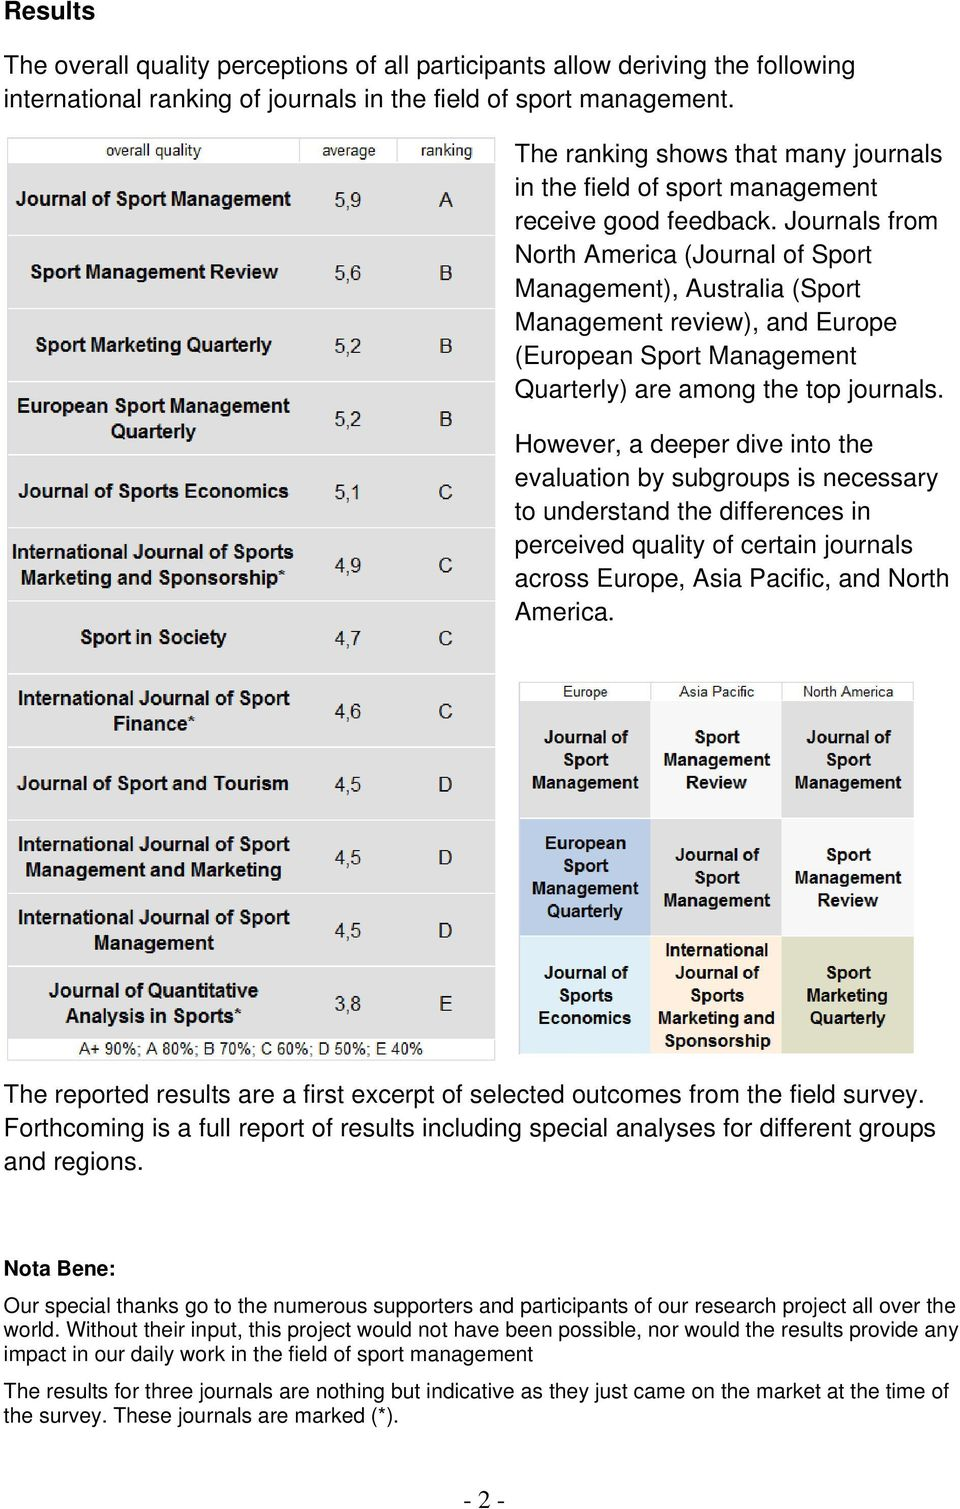 Journals from North America (Journal of Sport Management), Australia (Sport Management review), and Europe (European Sport Management Quarterly) are among the top journals.